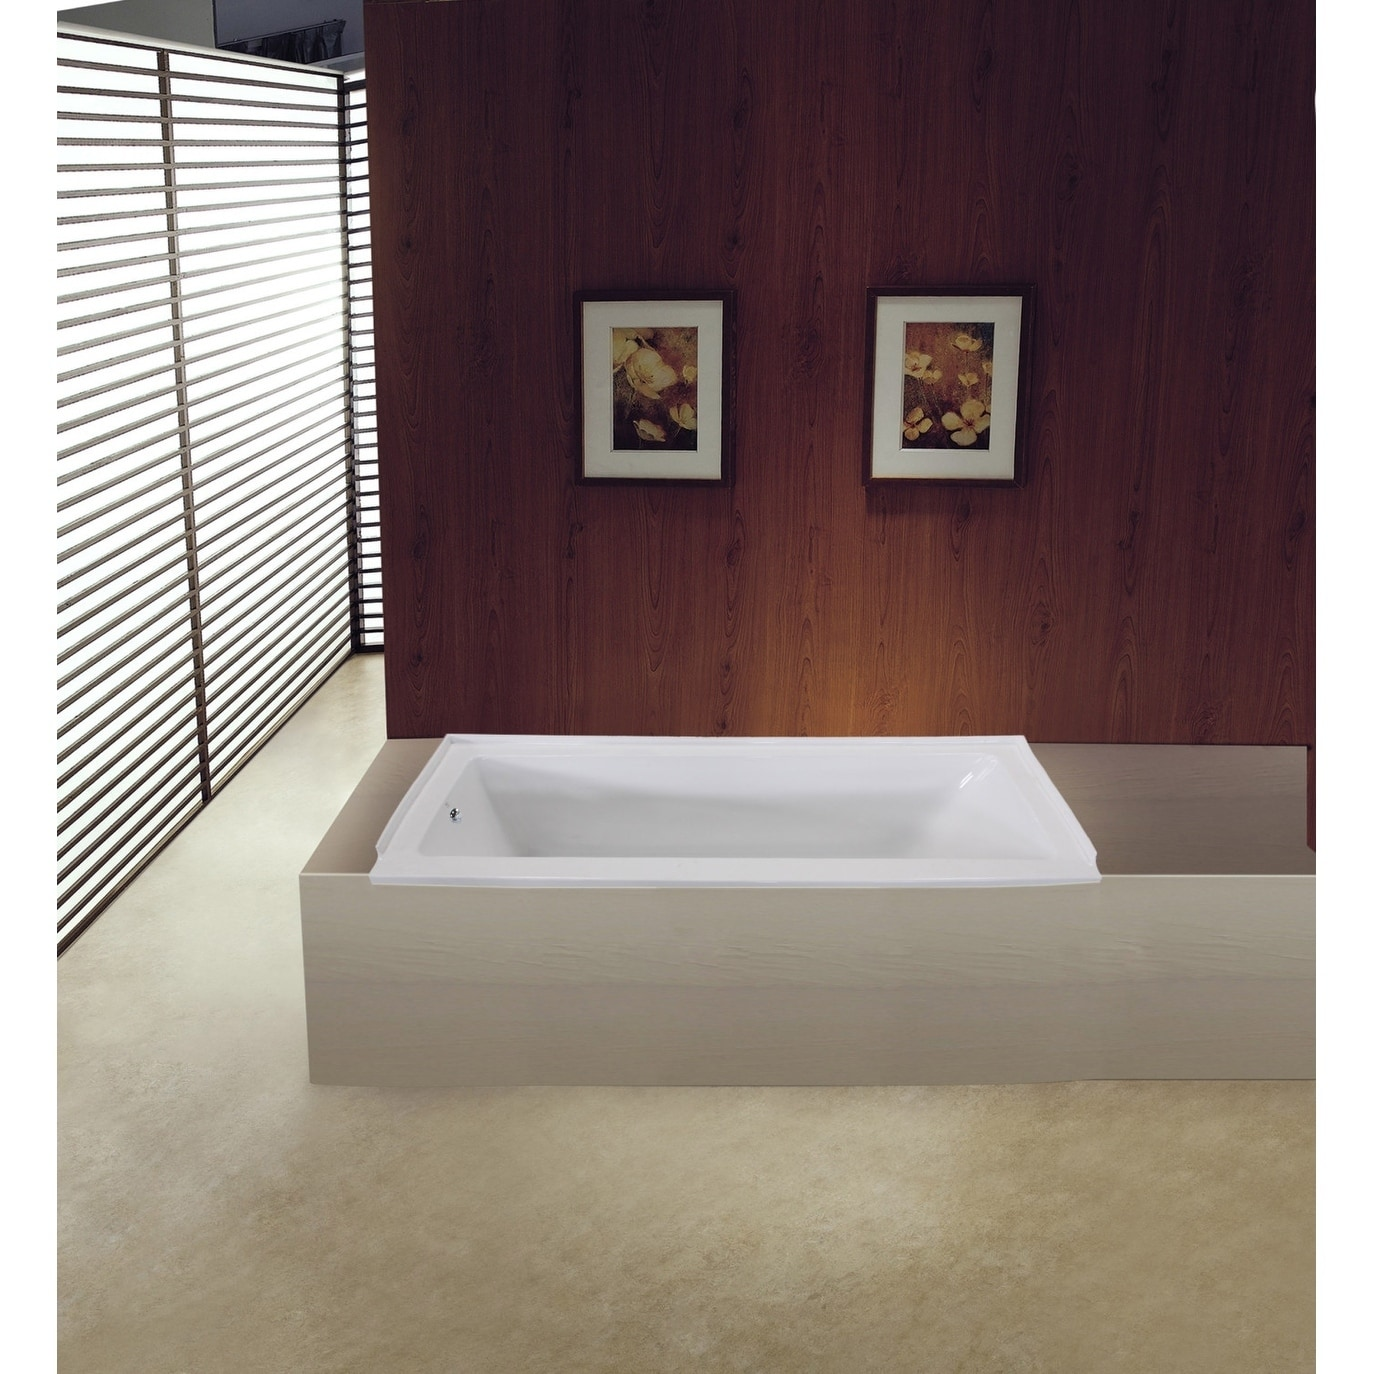 60 X 30 Inches Drop In Acrylic Bathtub Left White Free Shipping Today 24216231